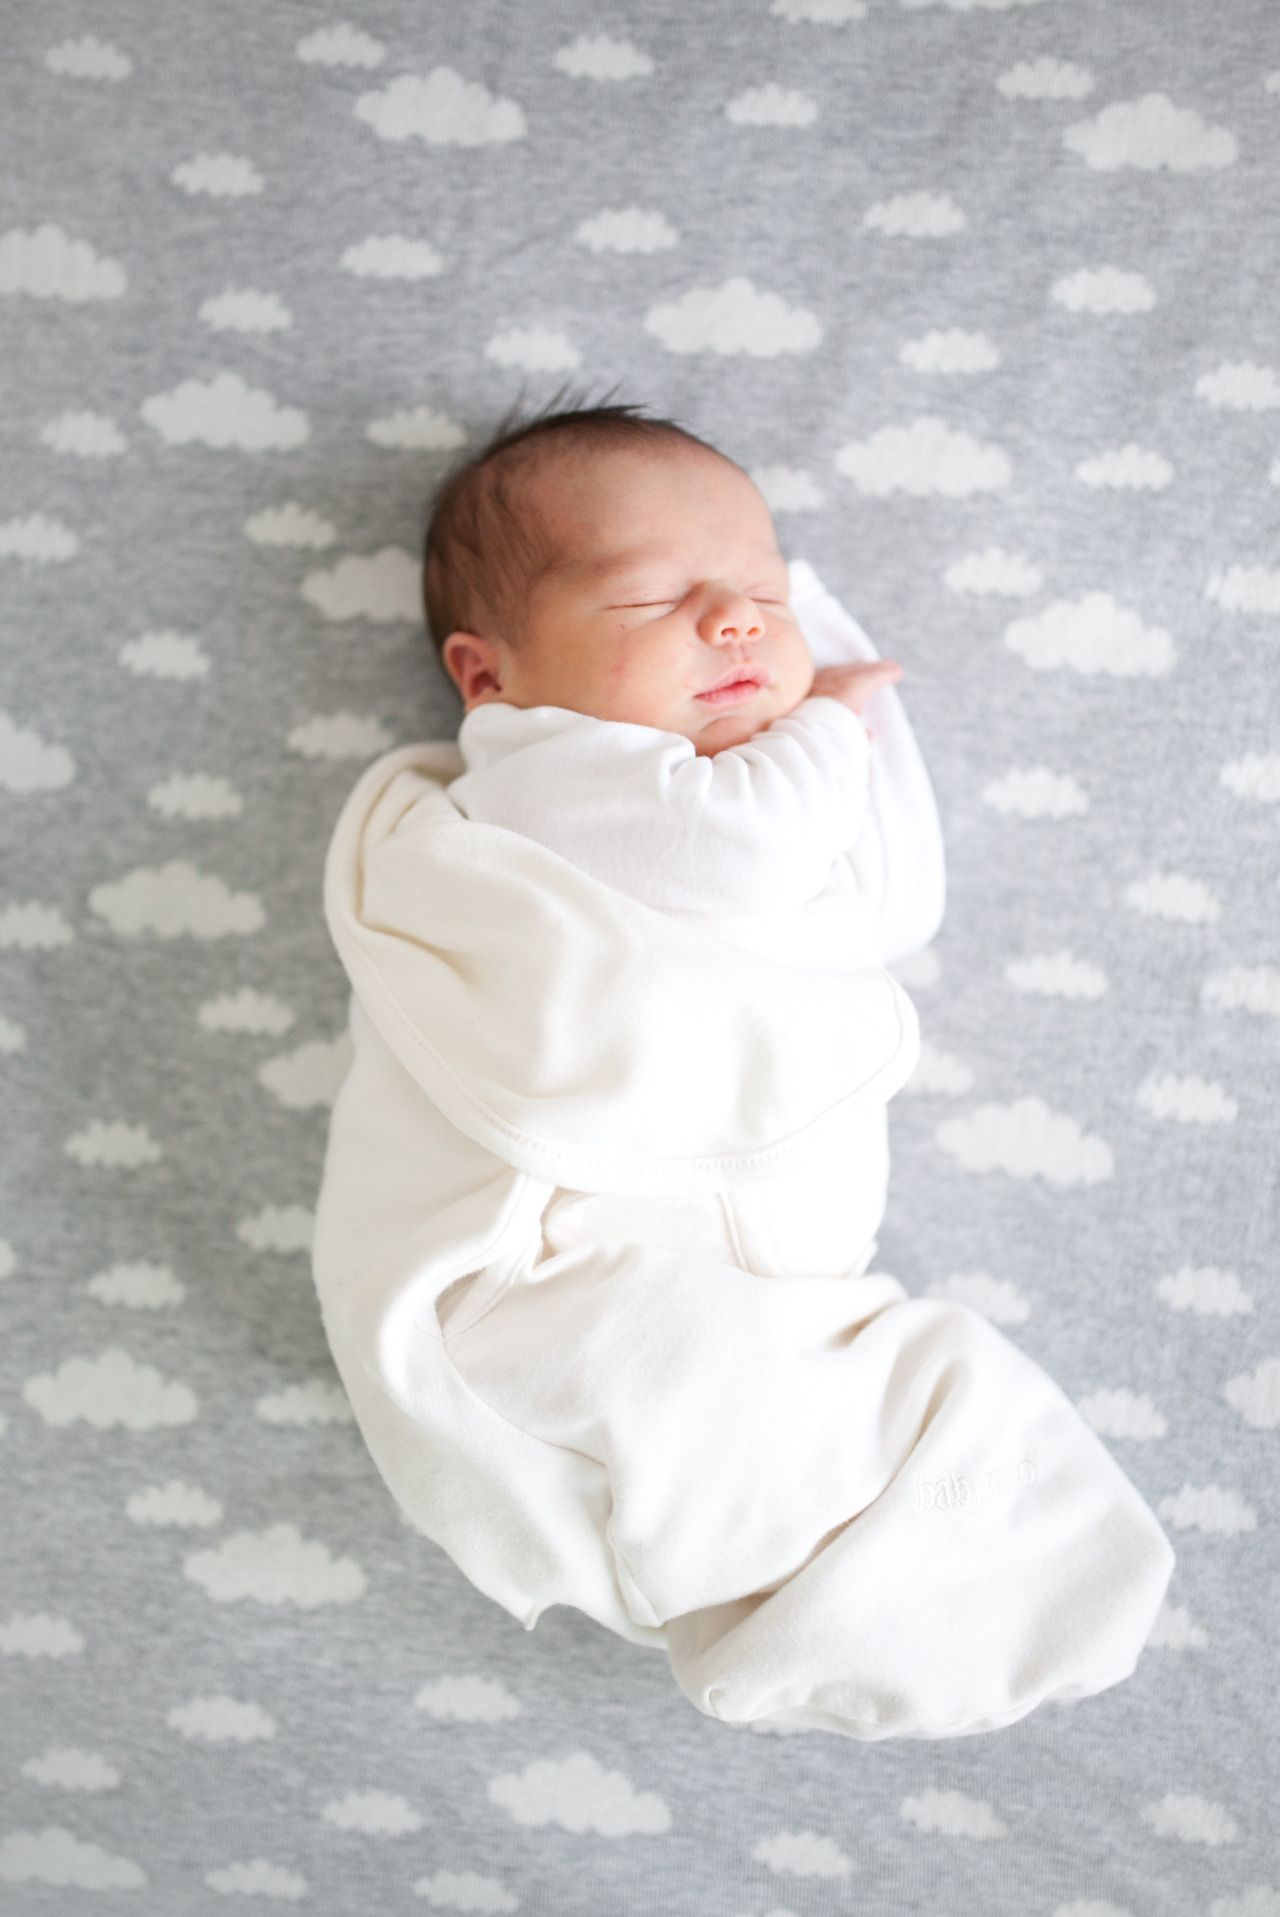 Wonderful World Of Babies Cute Babies Baby Pictures Beautiful Babies